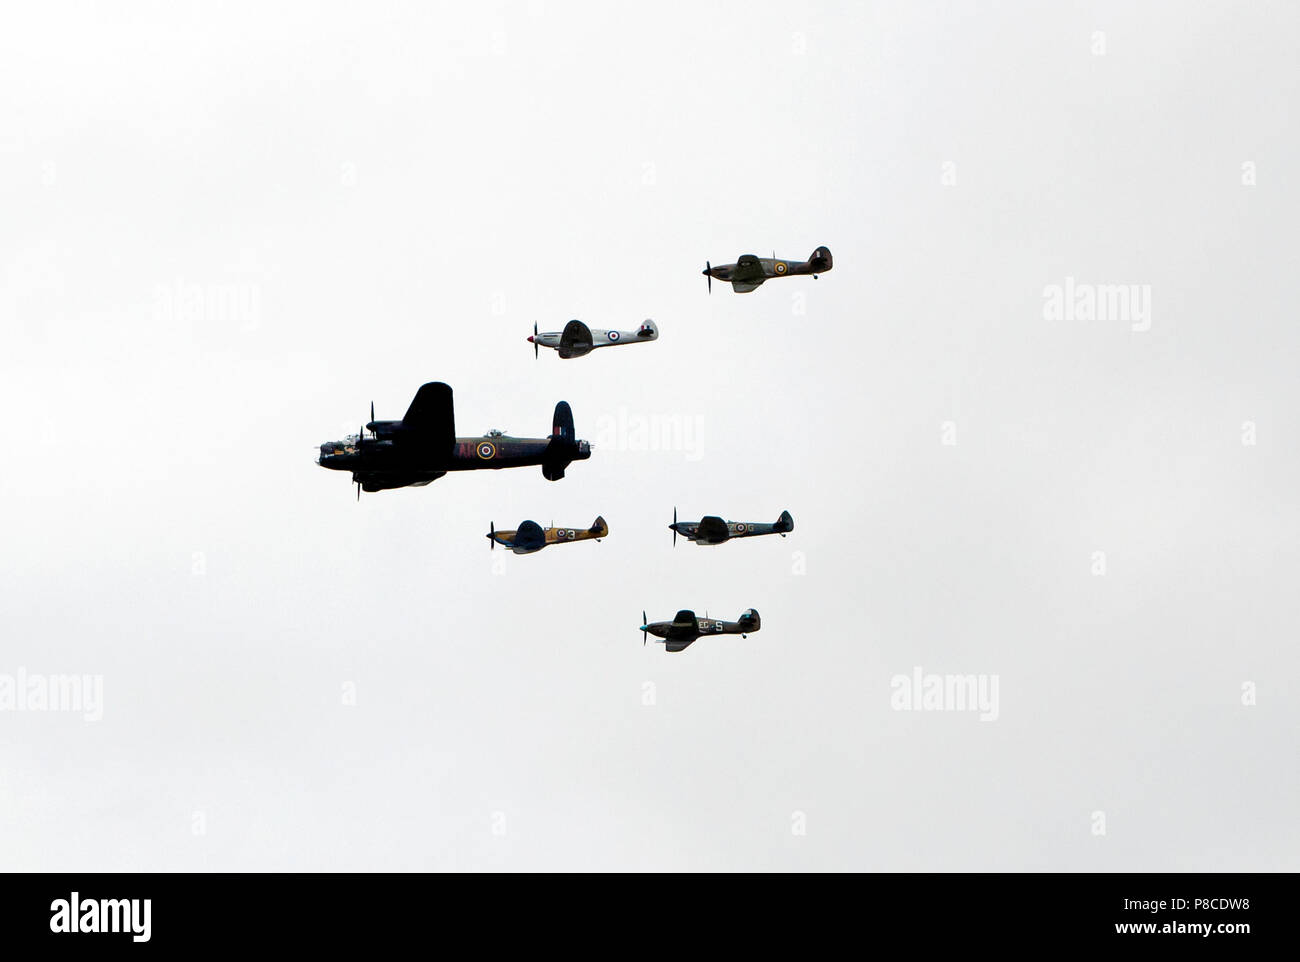 Lancaster, Hurricane and Spitfire Aircraft fly in formation over the Queen Elizabeth  Olympic Park  as part of the RAF Centennial Celebrations - Stock Image